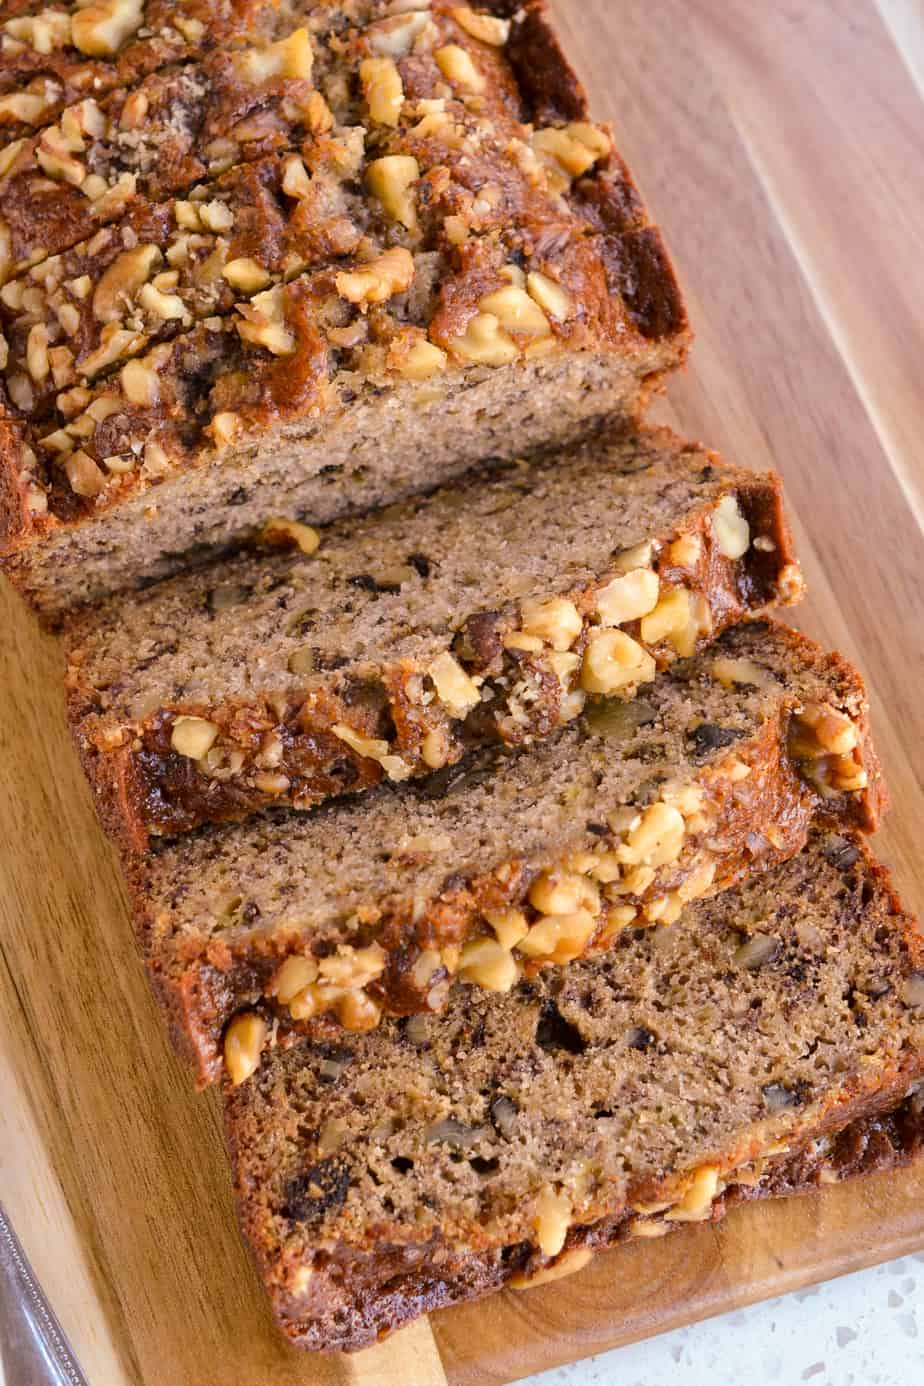 Slices of moist banana bread with walnuts